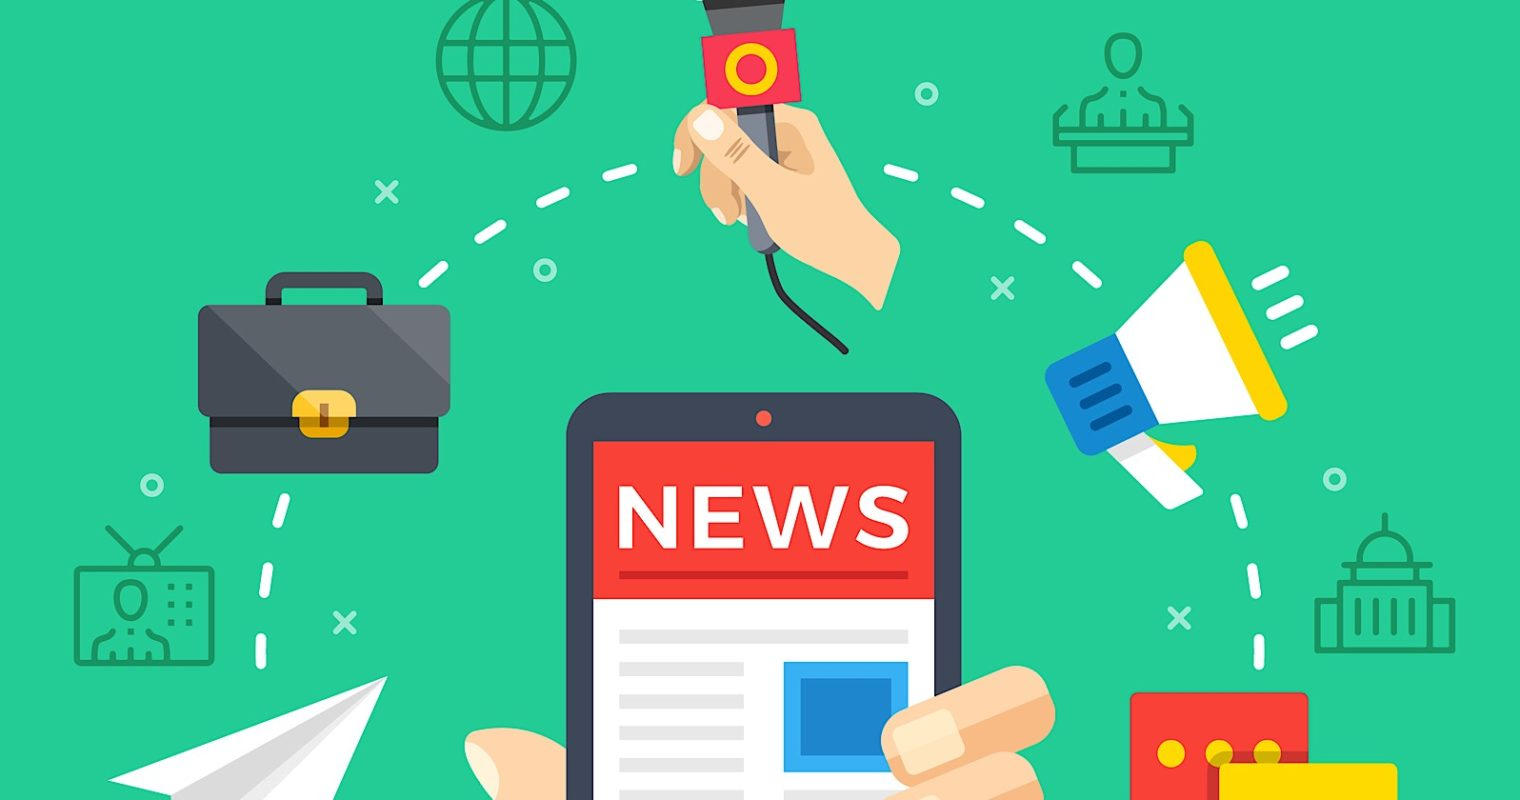 Google Updates Search Rankings to Favor Original News Reporting